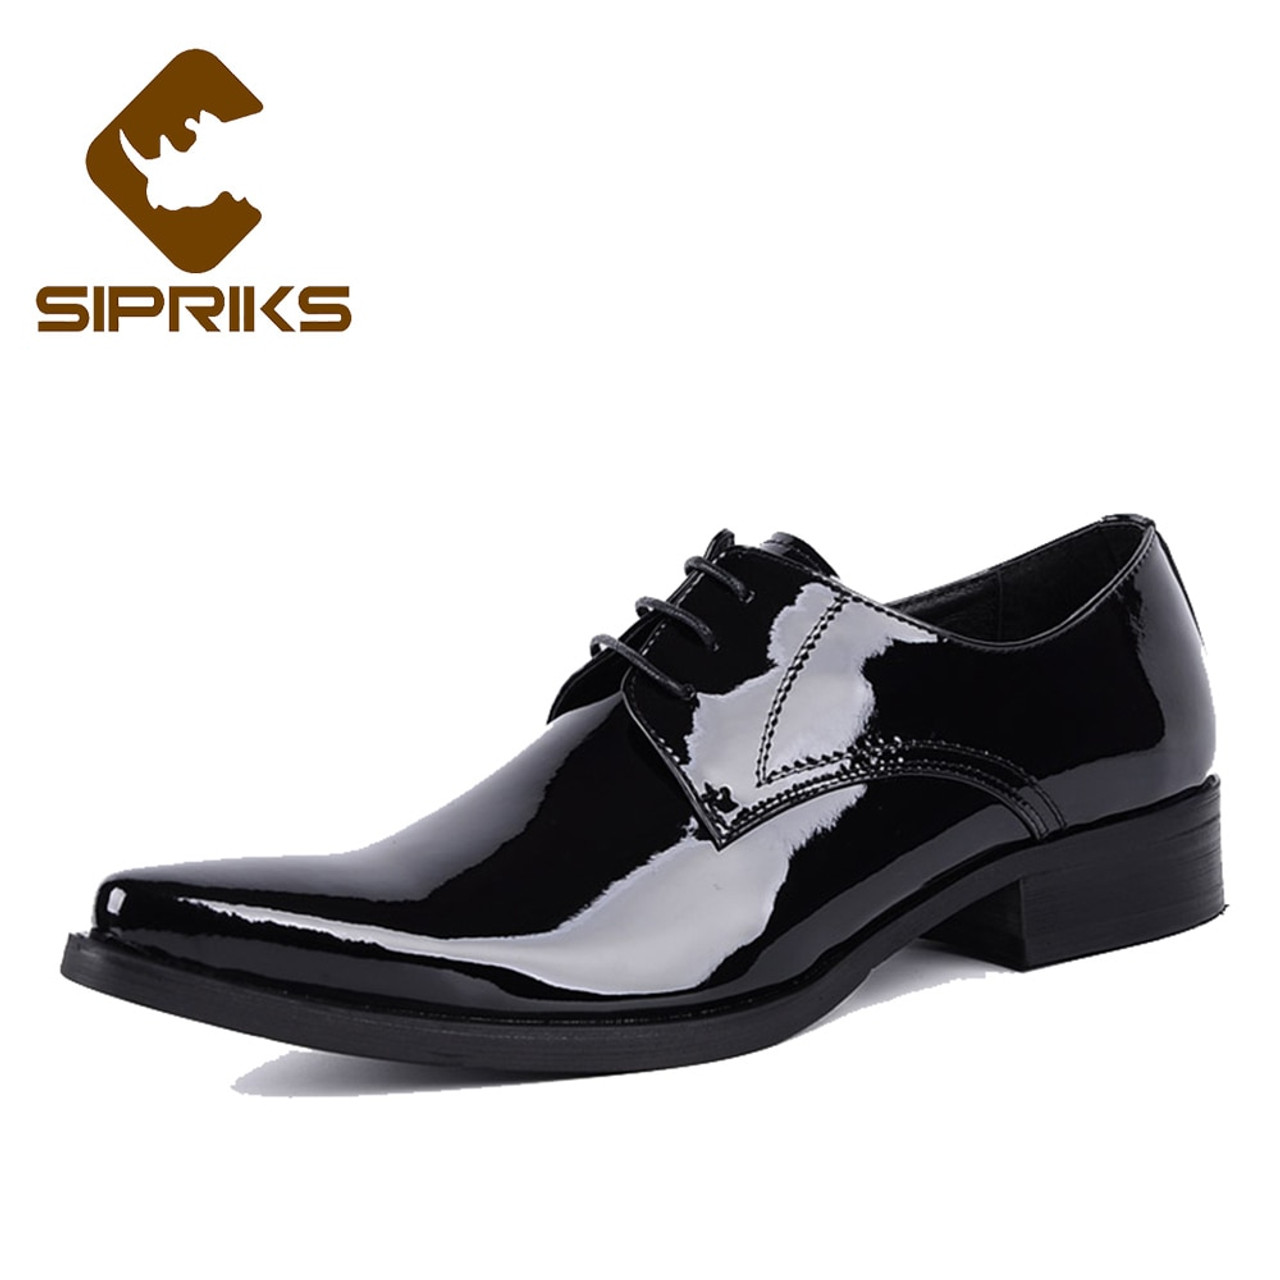 Sipriks Luxury Mens Patent Leather Black Shoes Pointed Toe Shiny Official  Shoes Elegant Mens Social Shoes Grooms Wedding Dress - OnshopDeals.Com b5faf5dc1640